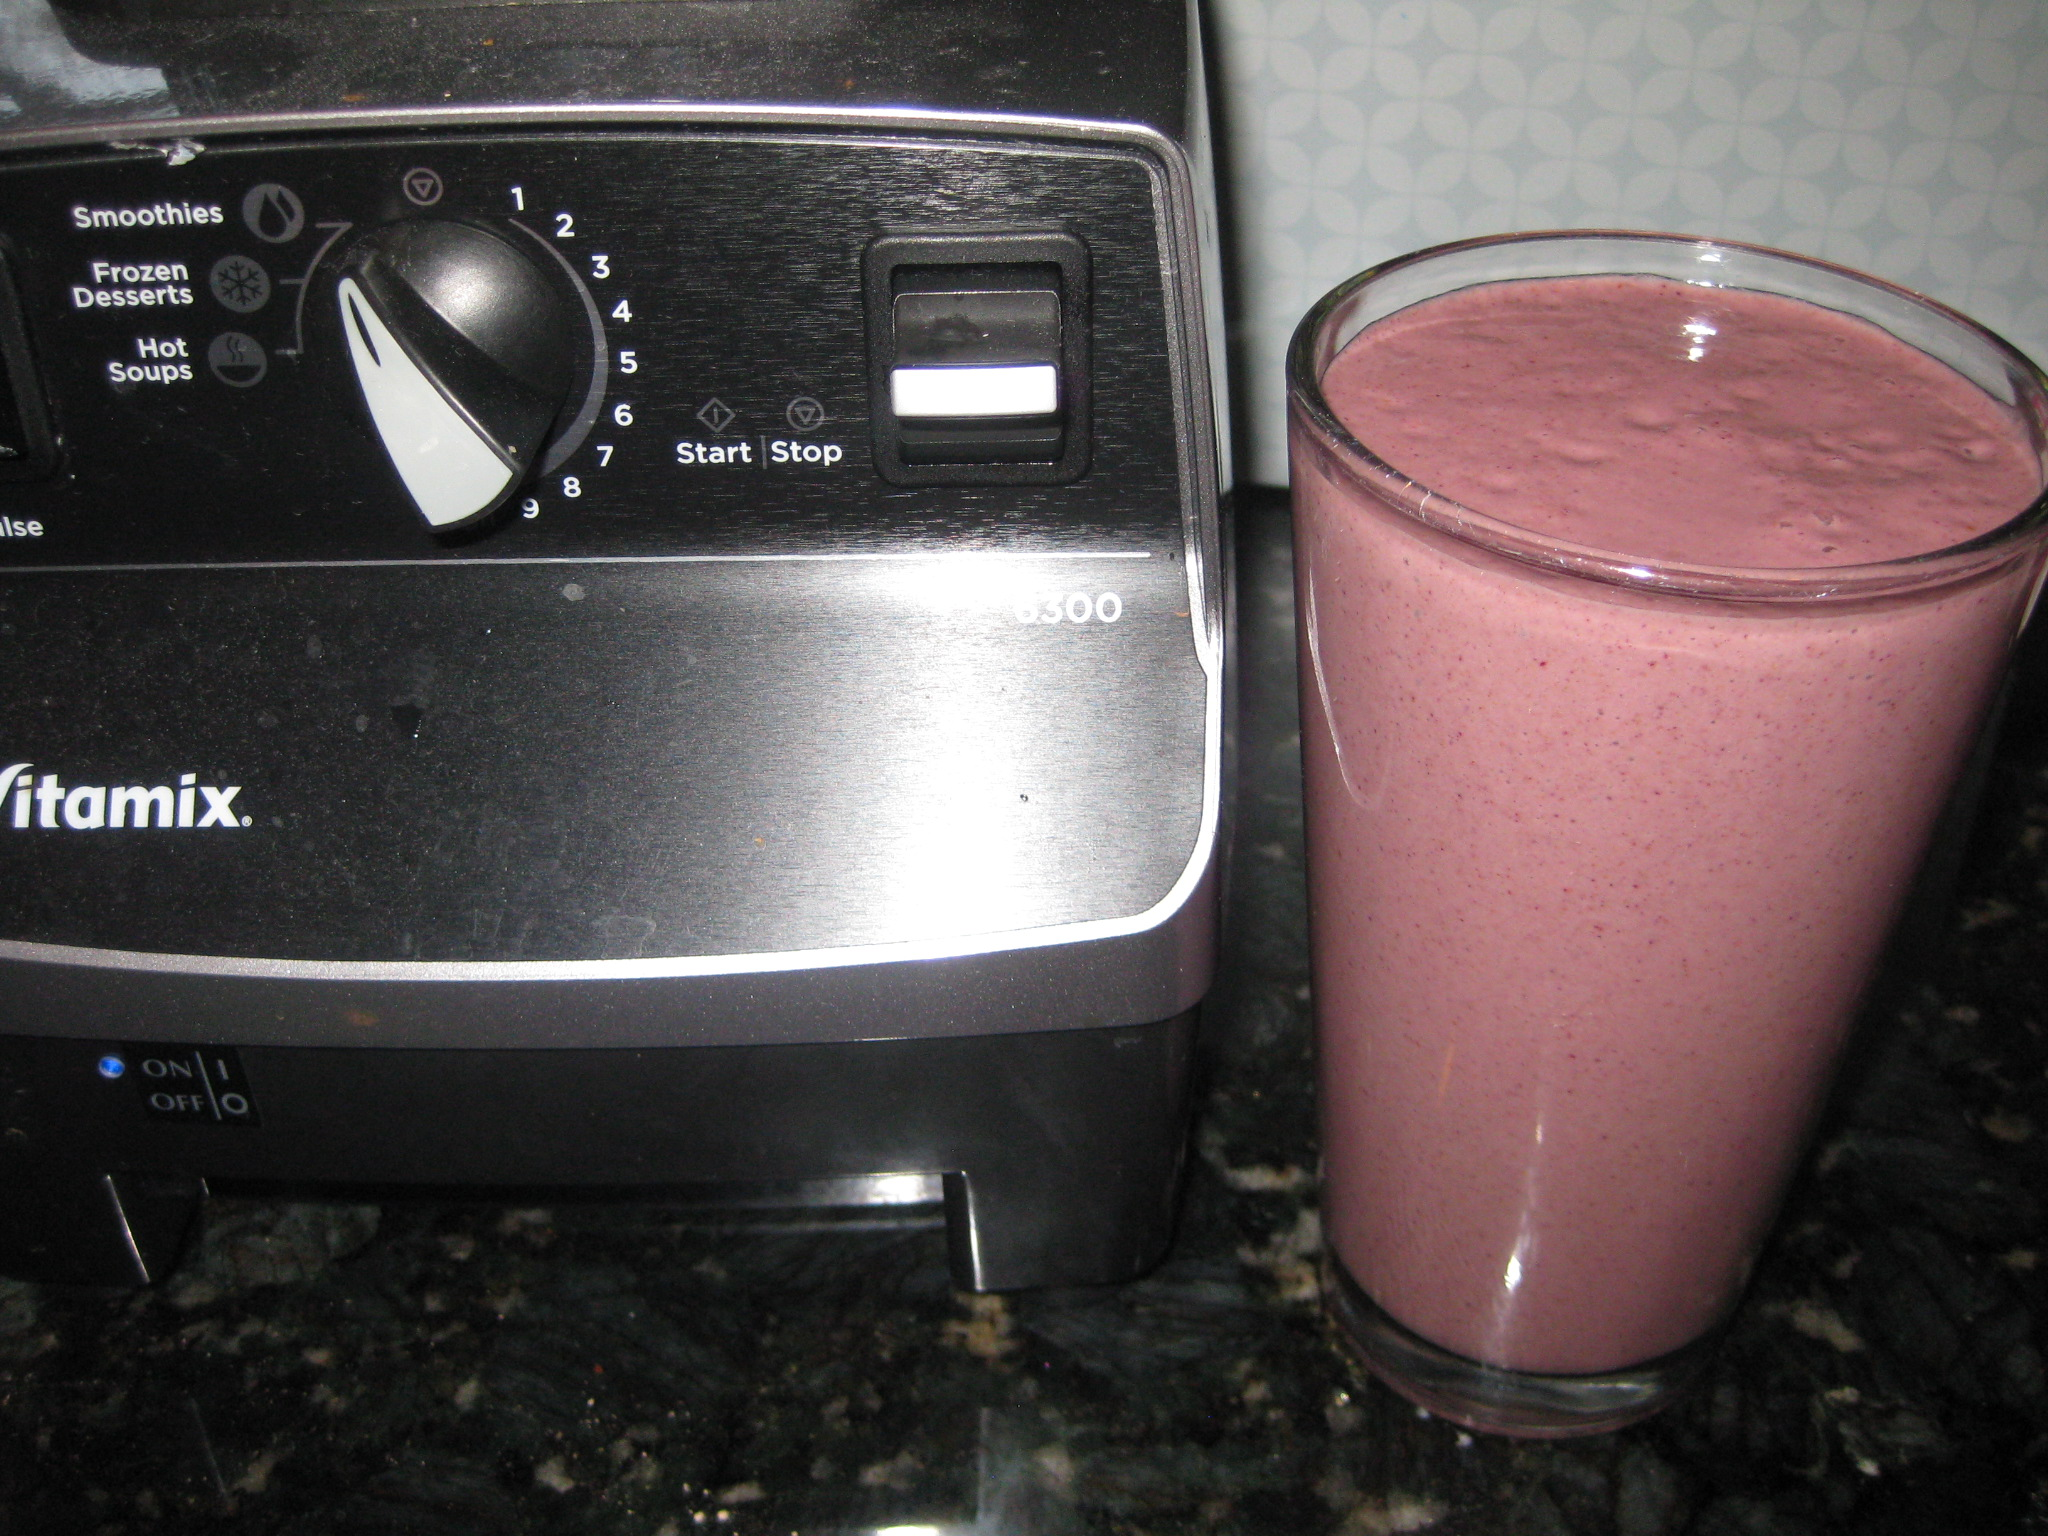 Dr. Oz Weight Loss Berry Breakfast Smoothie Technotini